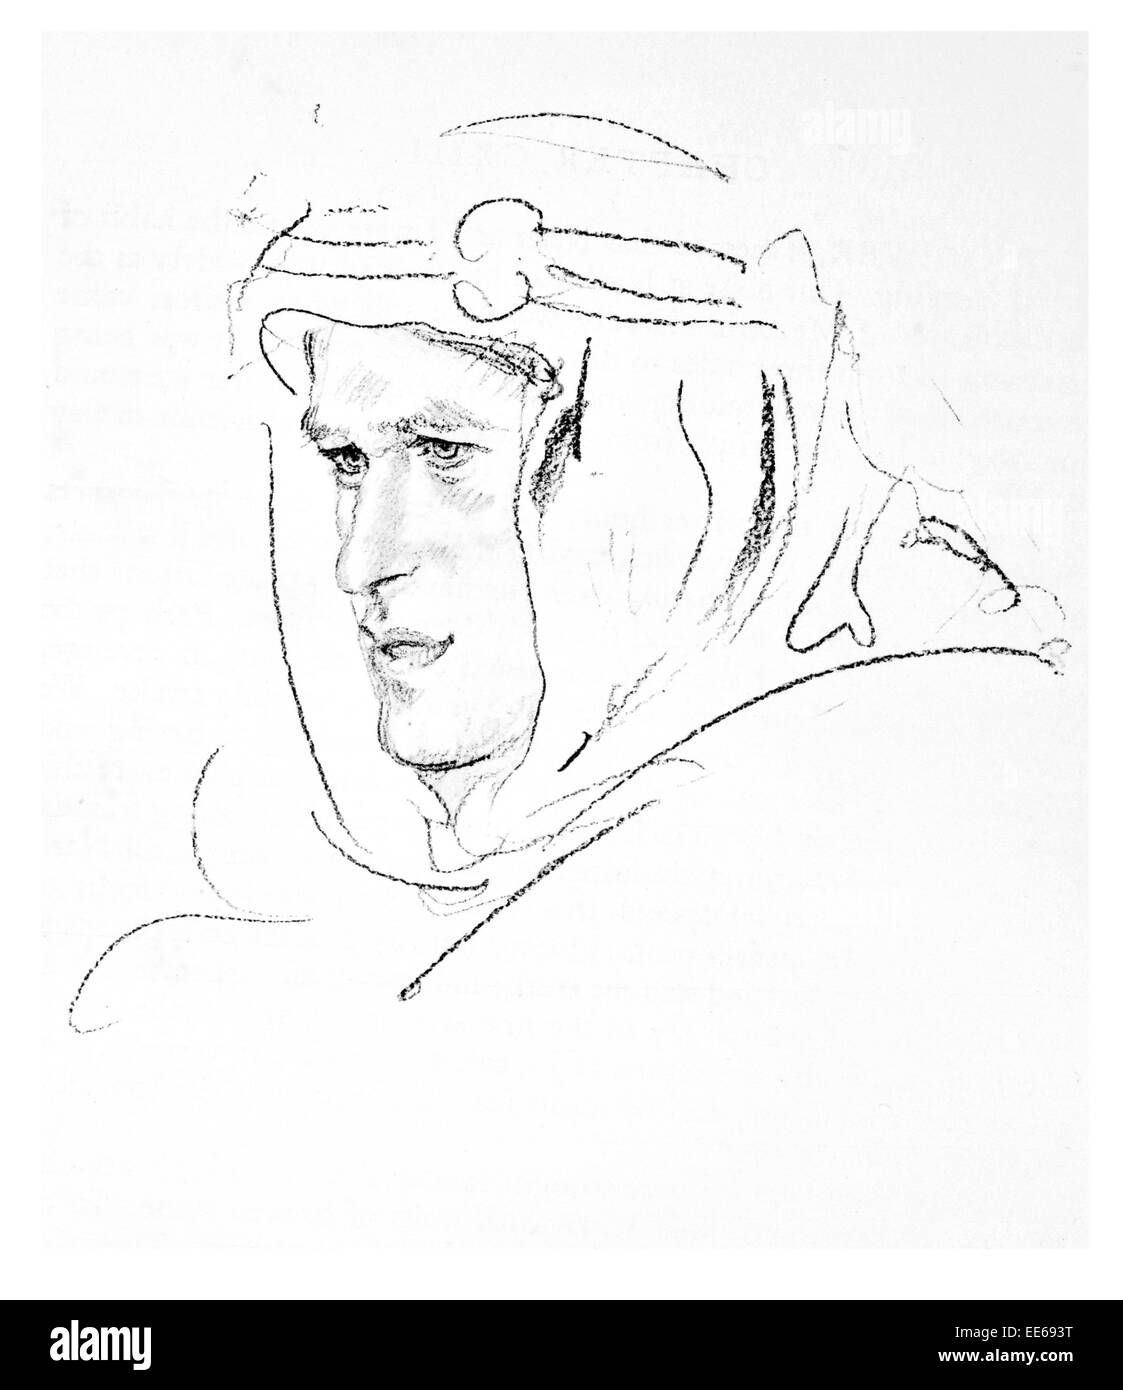 Thomas Edward Lawrence of Arabia 16 August 1888 19 May 1935 British Army officer Sinai Palestine Campaign Arab Revolt - Stock Image